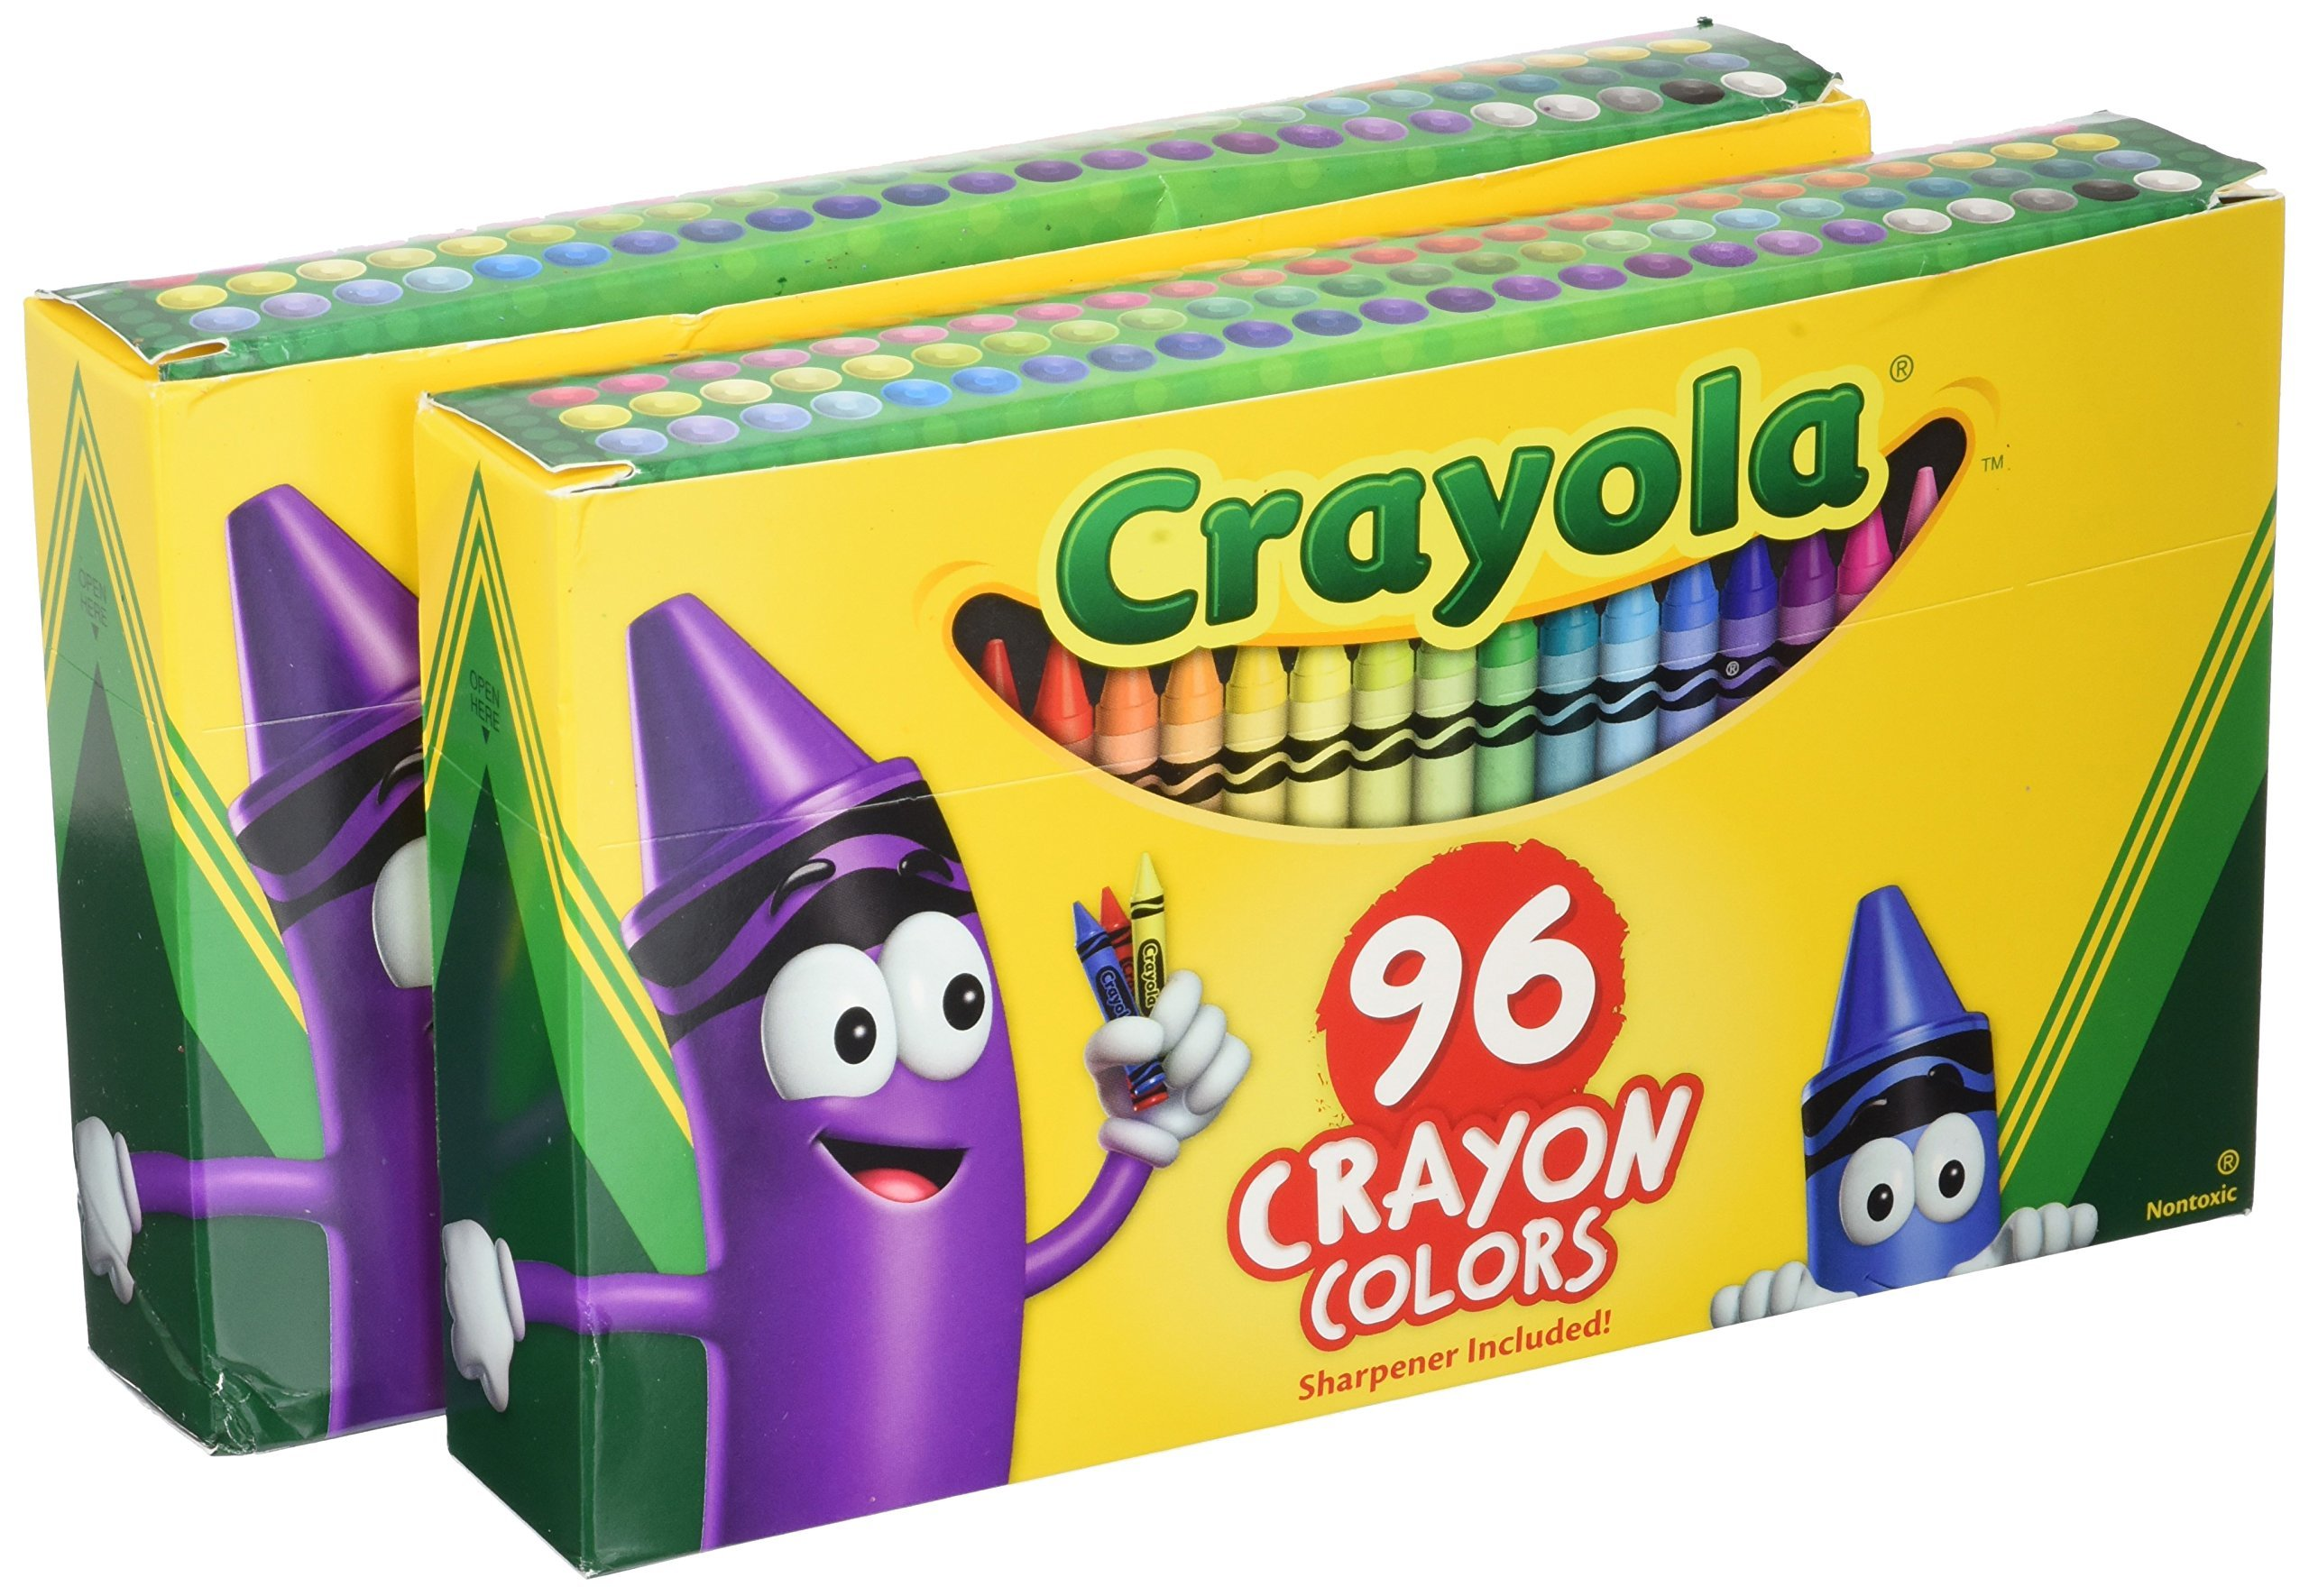 Crayola Crayons, Sharpener Included, 96 Colors (Pack of 2) by Crayola